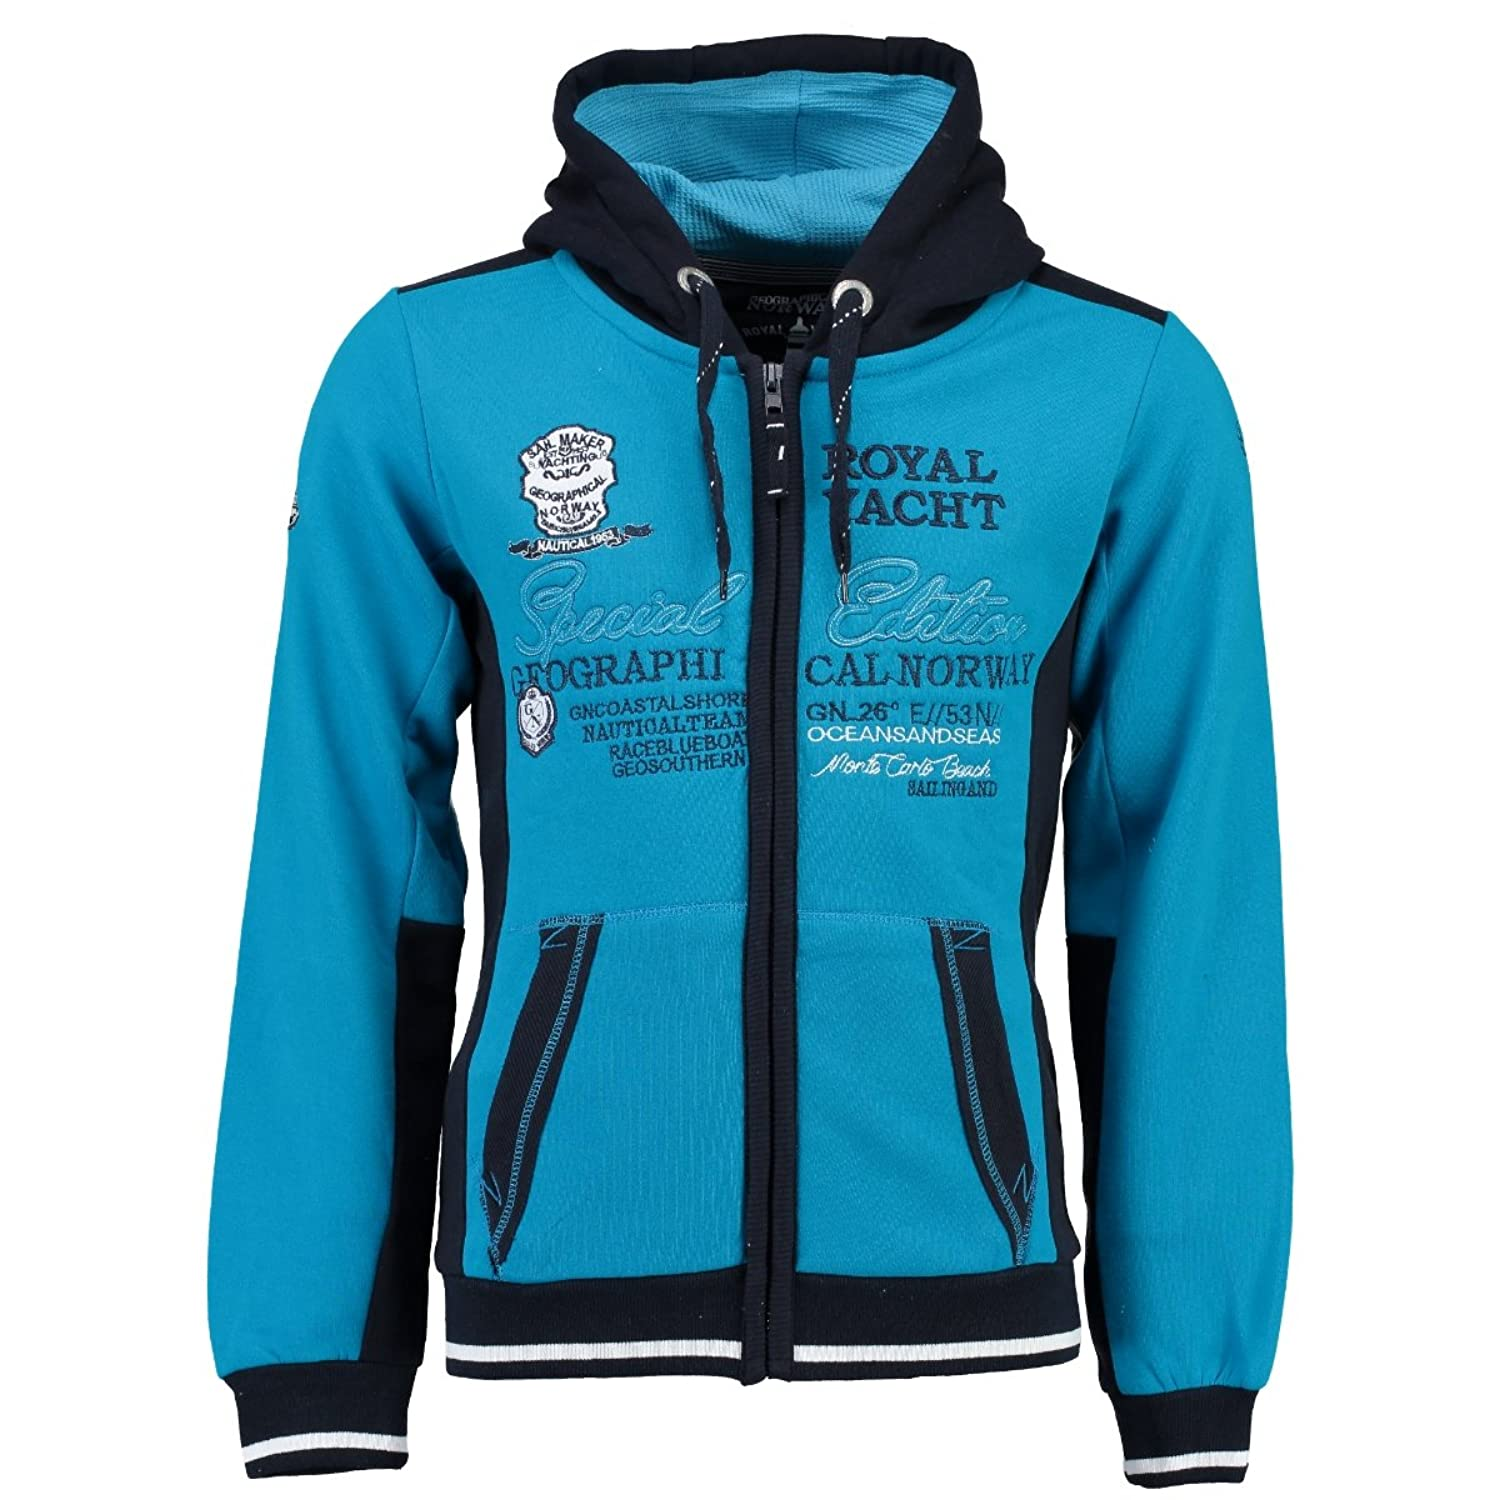 Geographical Norway Men's Blouse Jacket